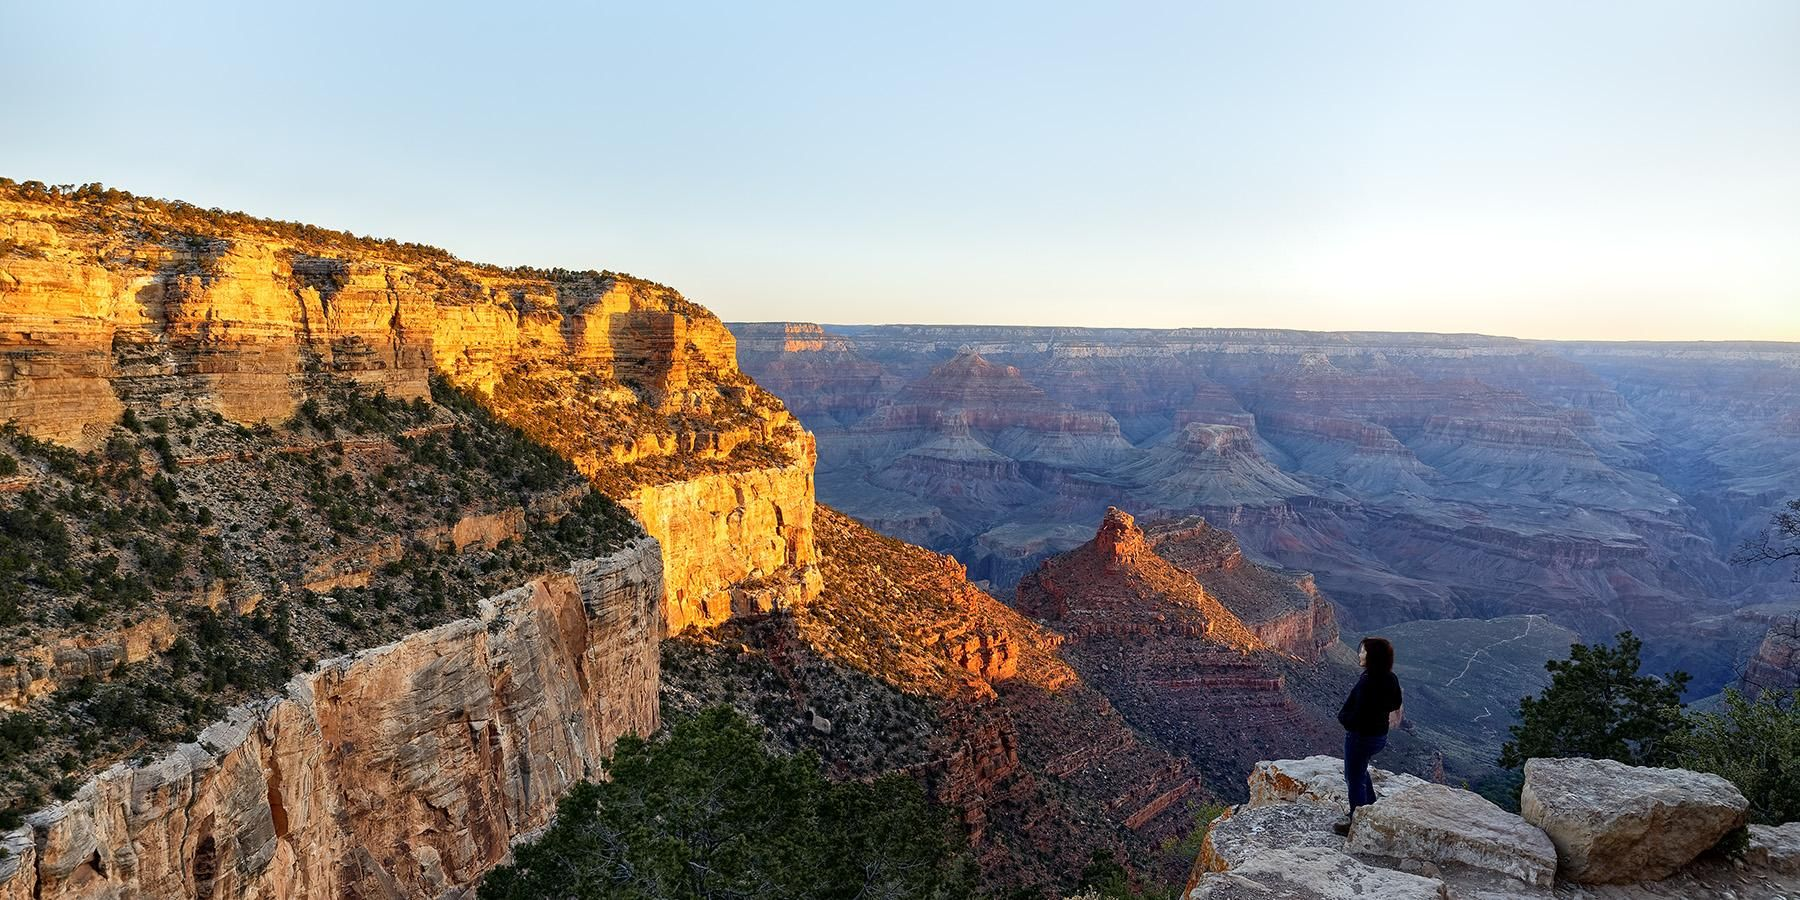 Sunrise in Grand Canyon, thanks for sharing be sure to post #gate1travel to share your photos with us and be featured!